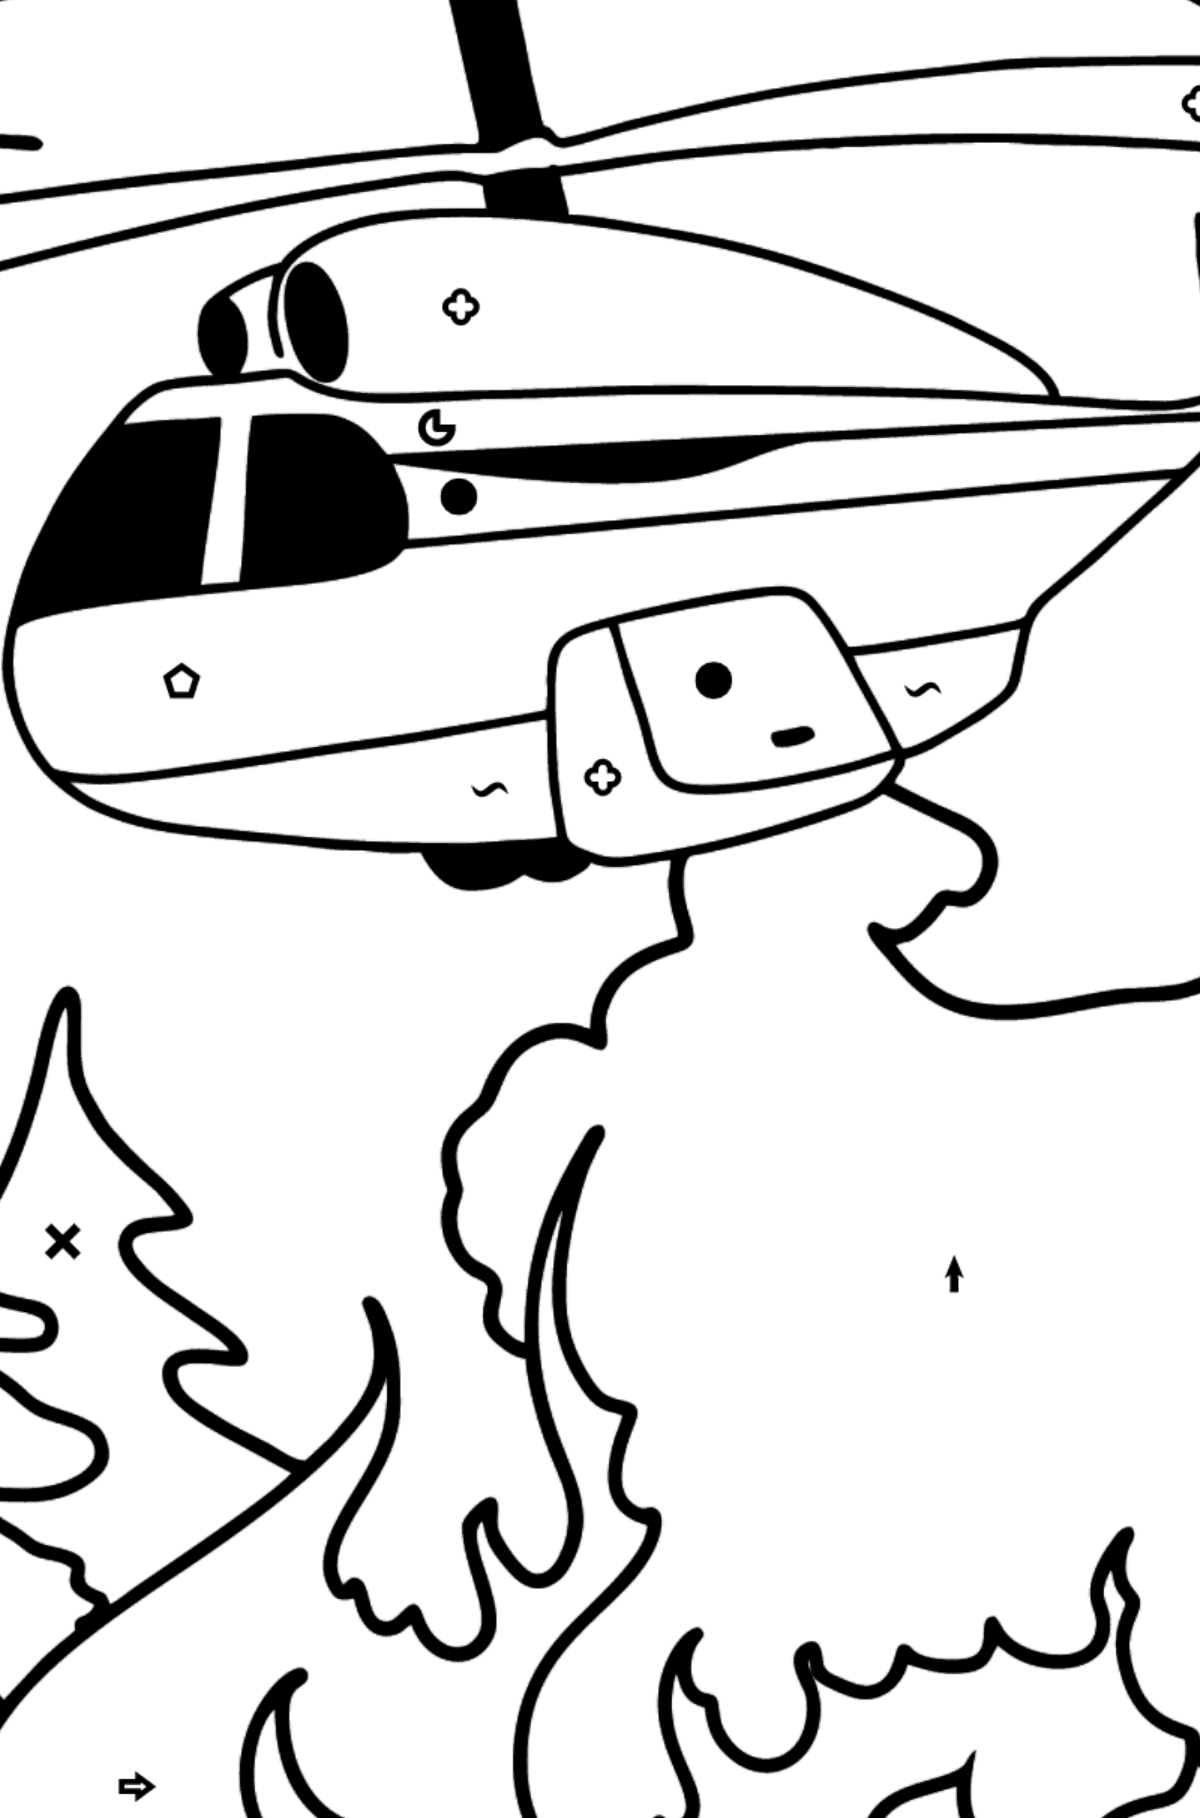 Helicopter Extinguishing Fire coloring page - Coloring by Symbols and Geometric Shapes for Kids